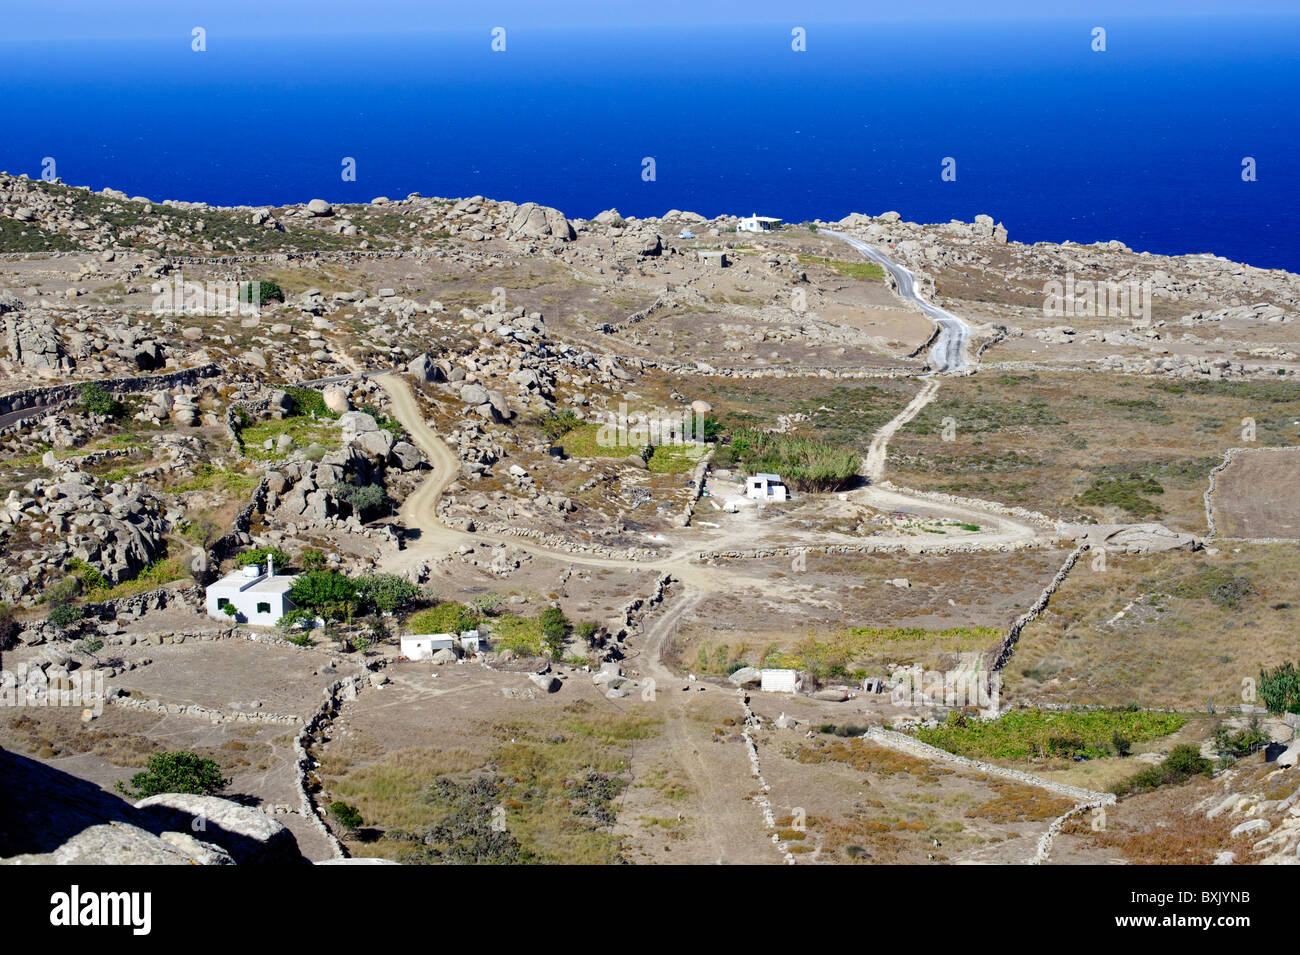 Arid farmland in the countryside near Volax, on the Greek Cyclade island of Tinos. - Stock Image